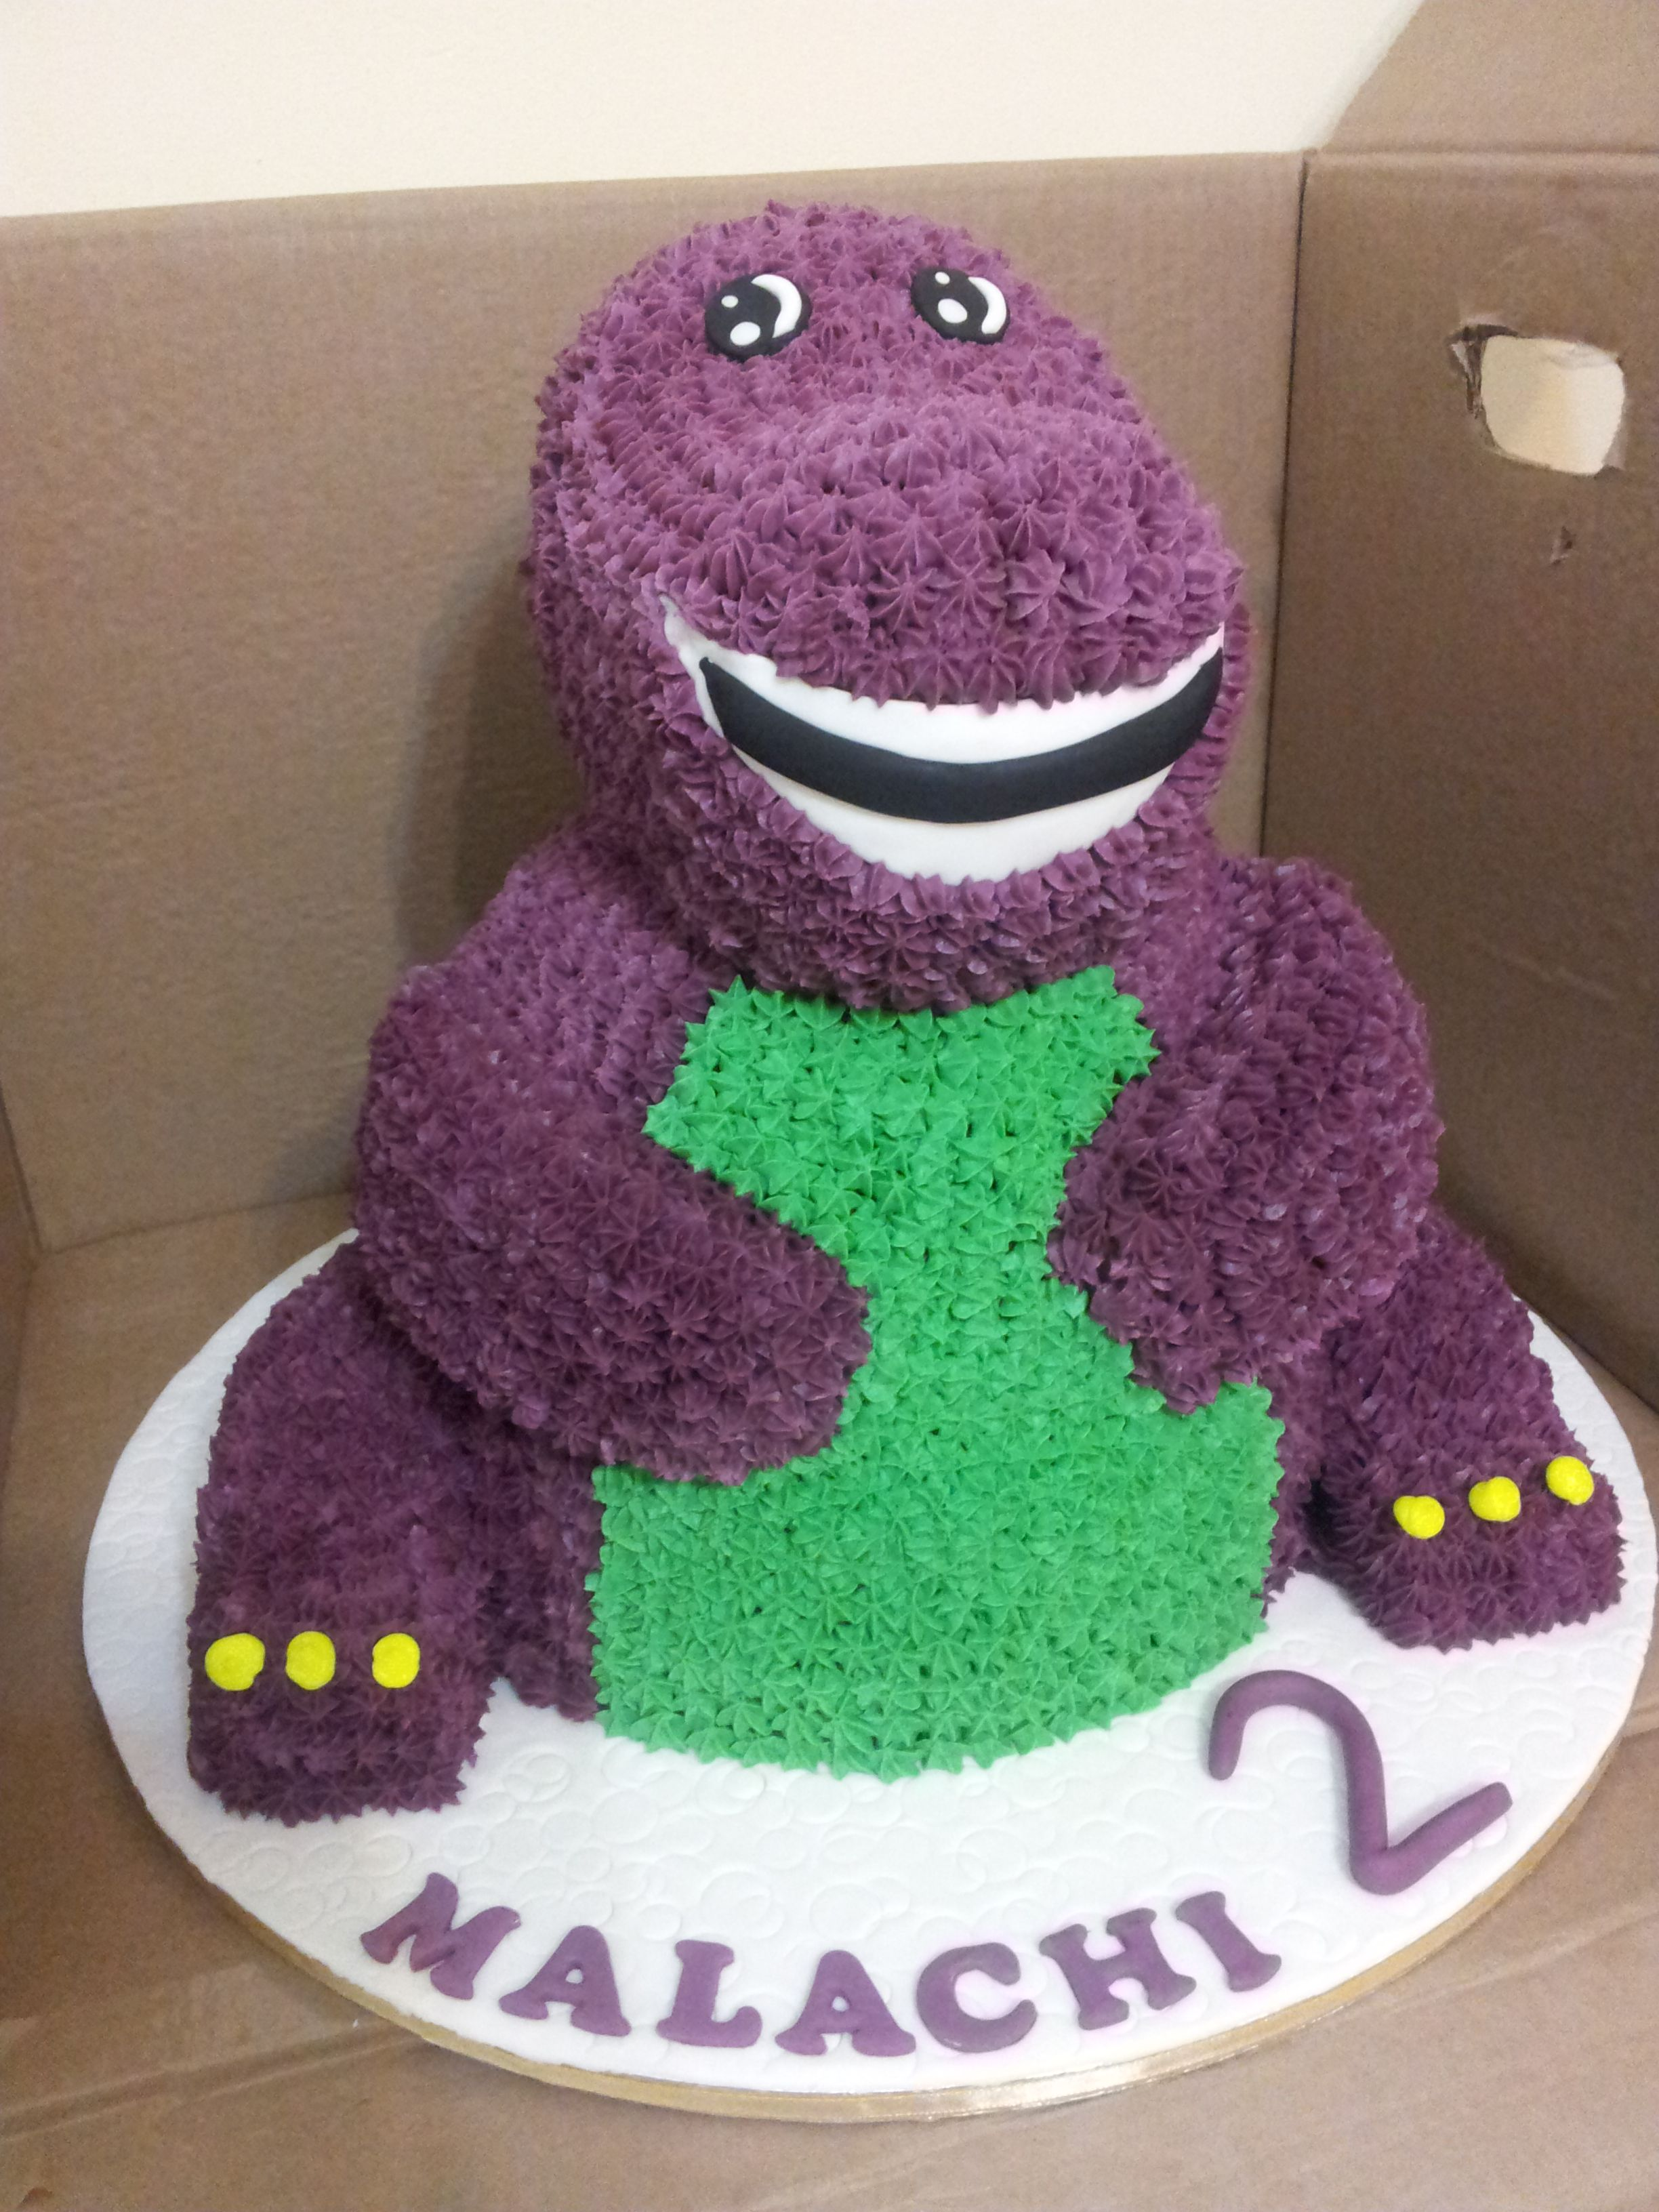 Barney cake for a two year old boy Cakes by Maggie Gagiano